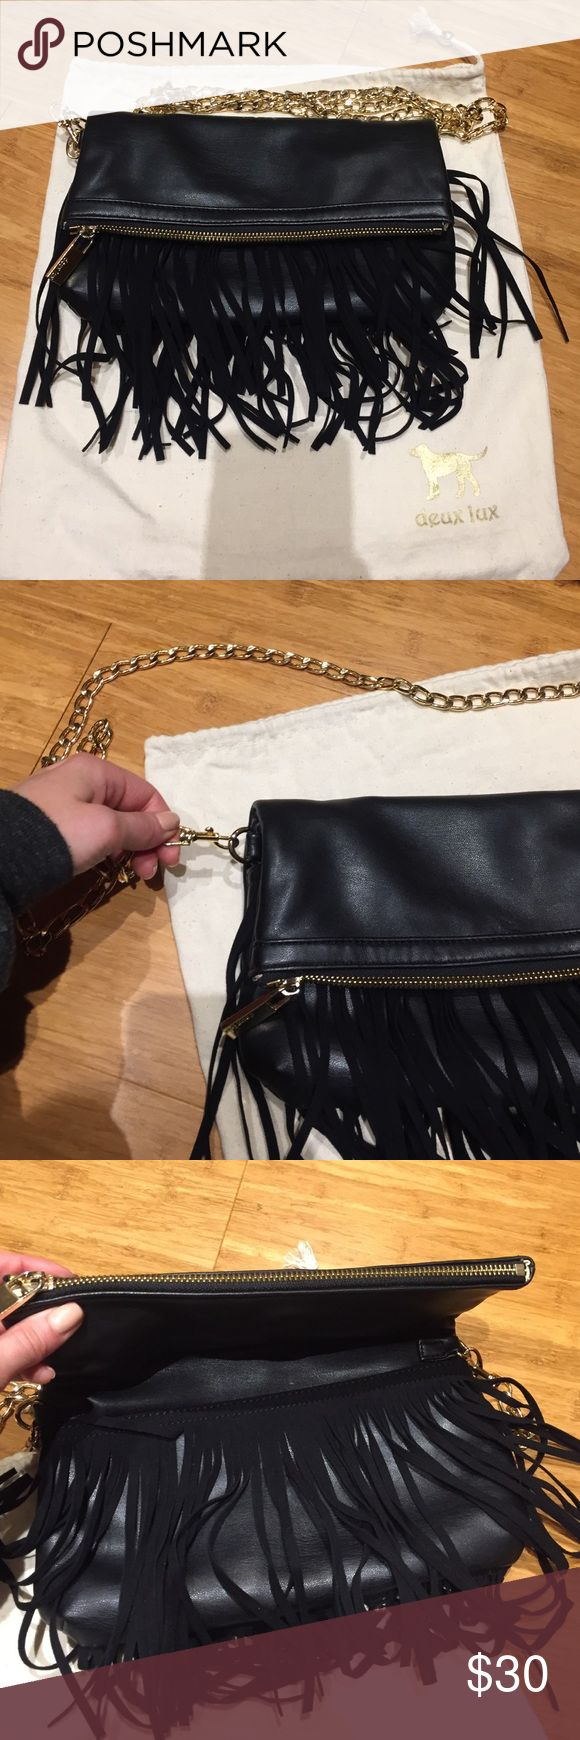 Fringe fold-over purse Gold chain that detaches. Comes with dust bag. Inside has some lipstick stains but exterior is in great condition. 10 inches wide 6 inches height folded over Deux Lux Bags Crossbody Bags